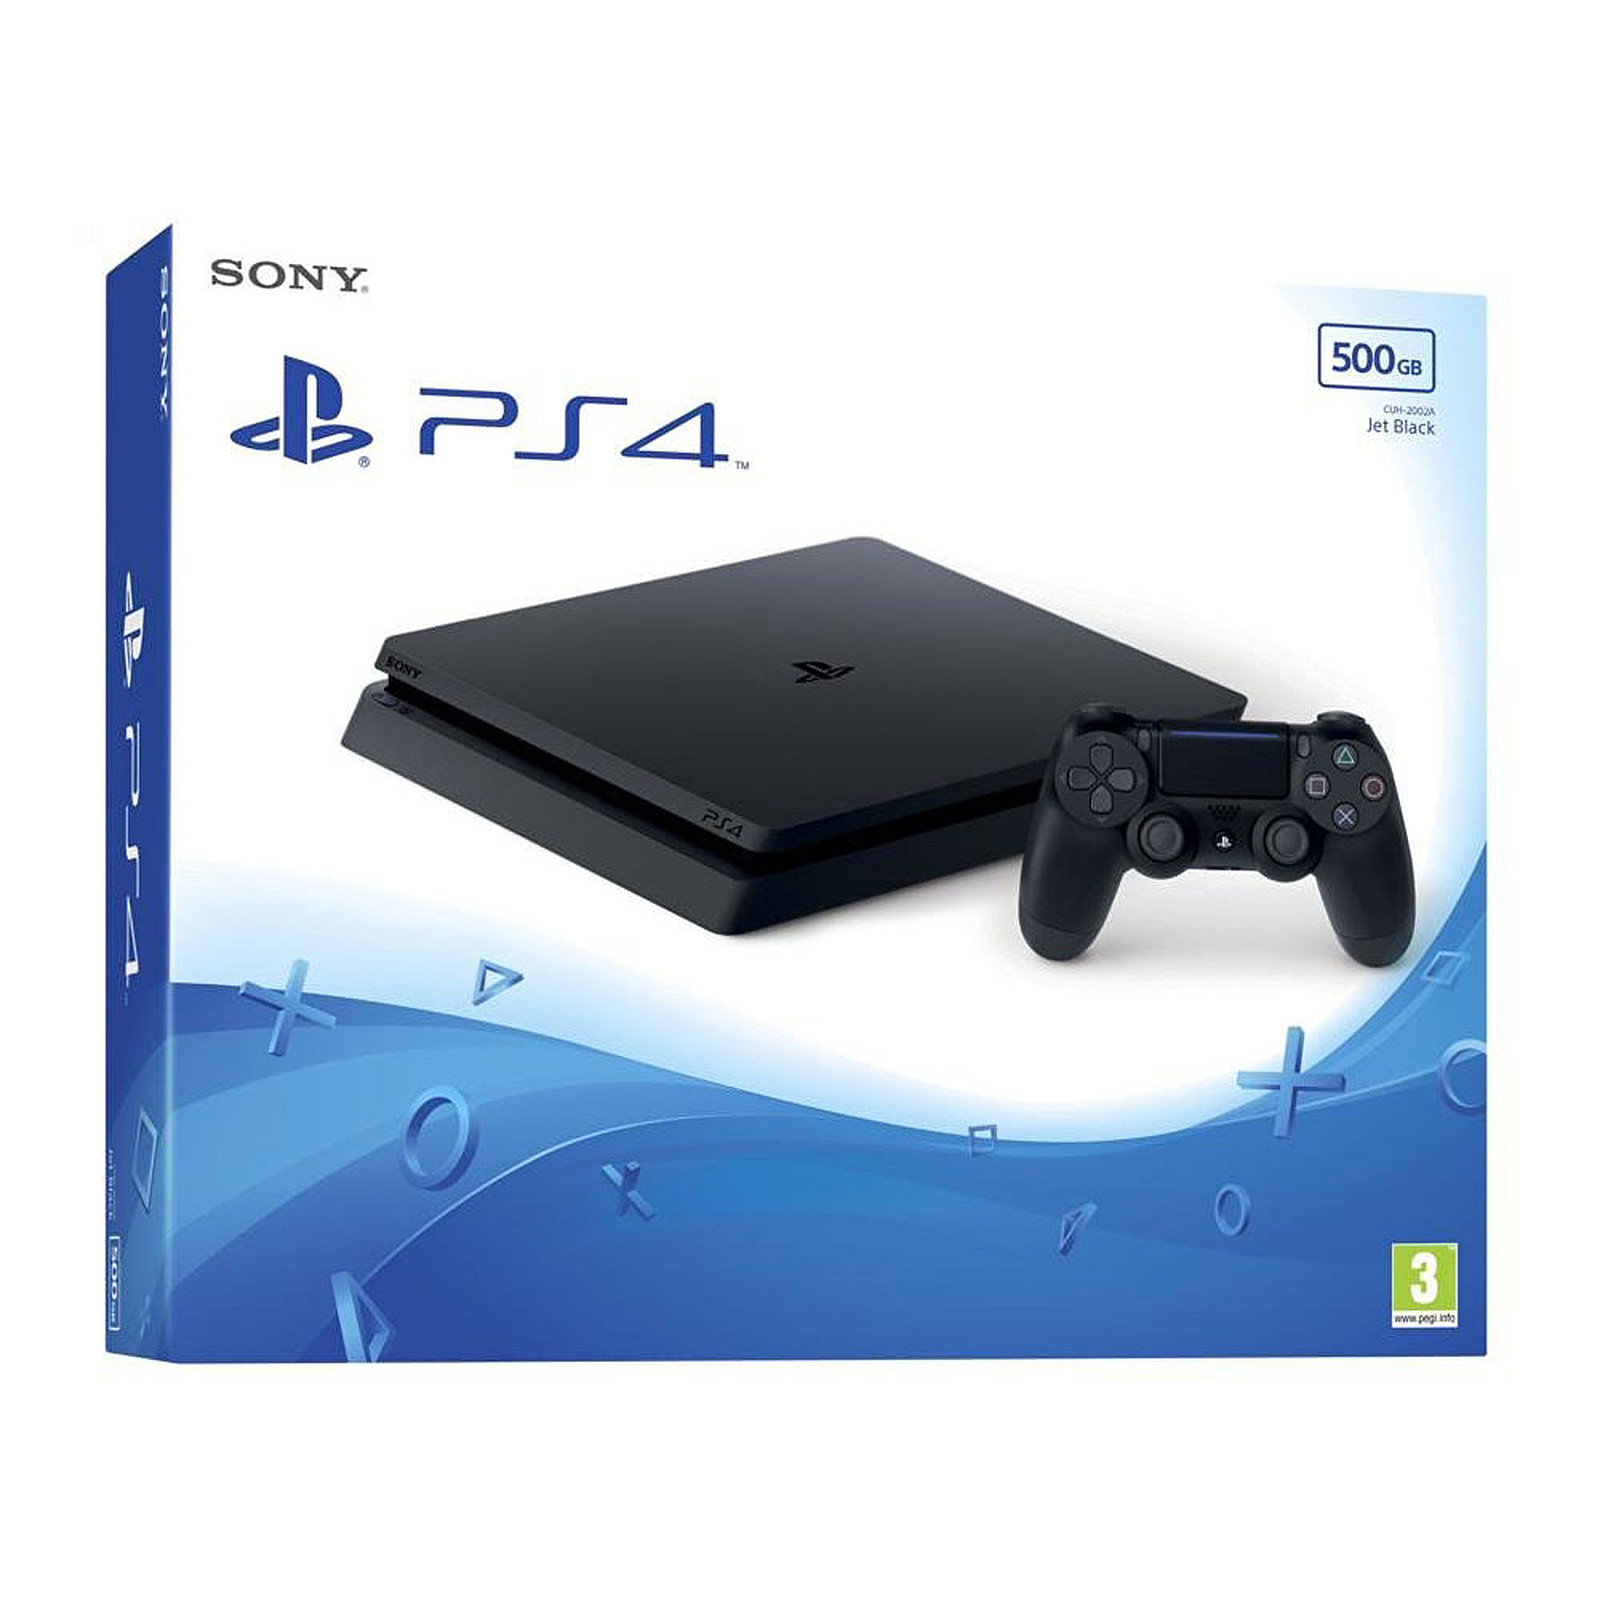 Sony PlayStation 4 Slim (500 Go) - Jet Black